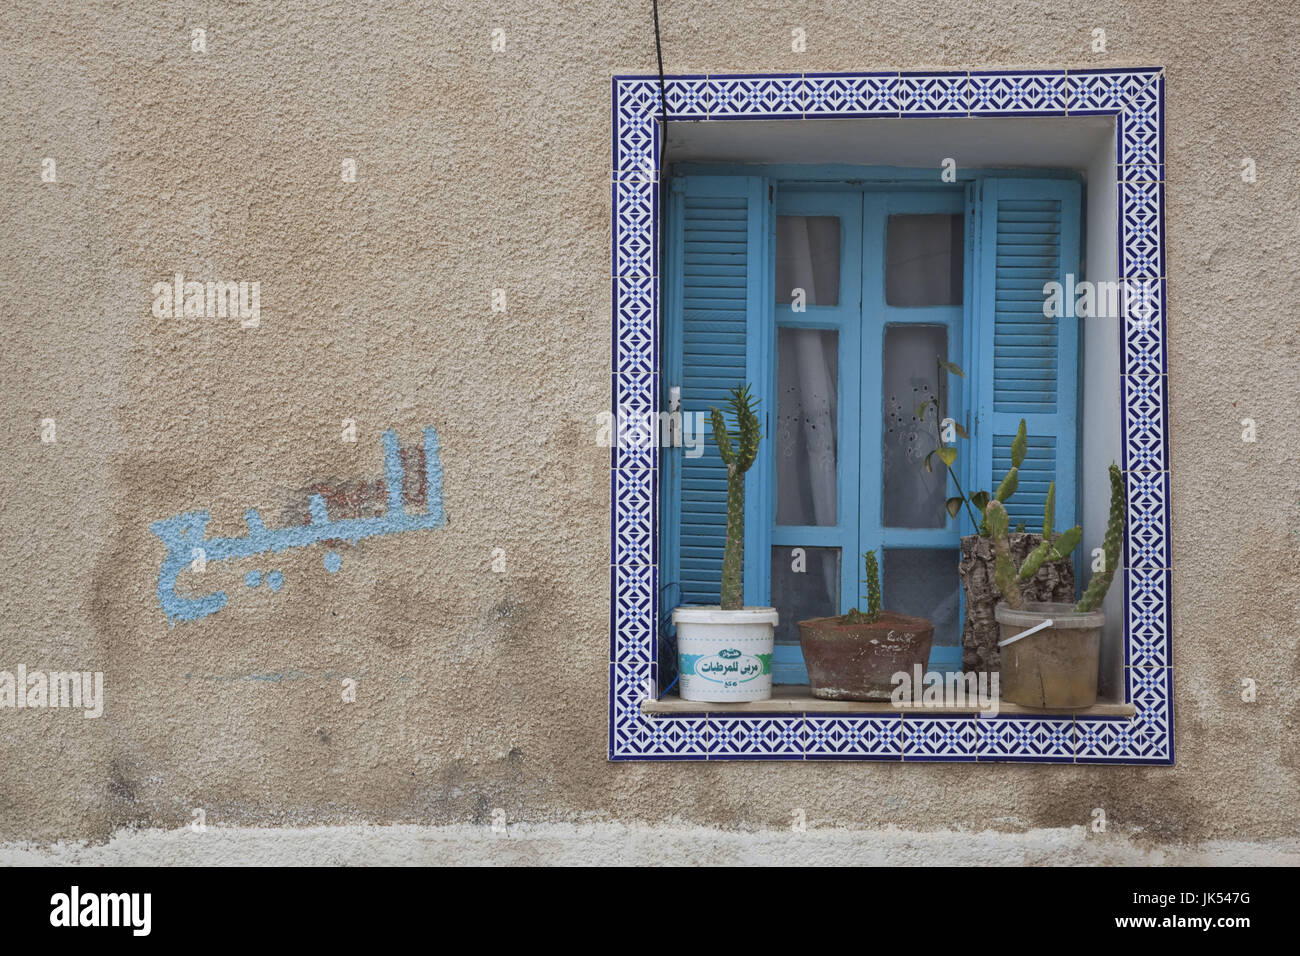 Tunisia, Tunisian Central Coast, Mahdia, Window Detail   Stock Image